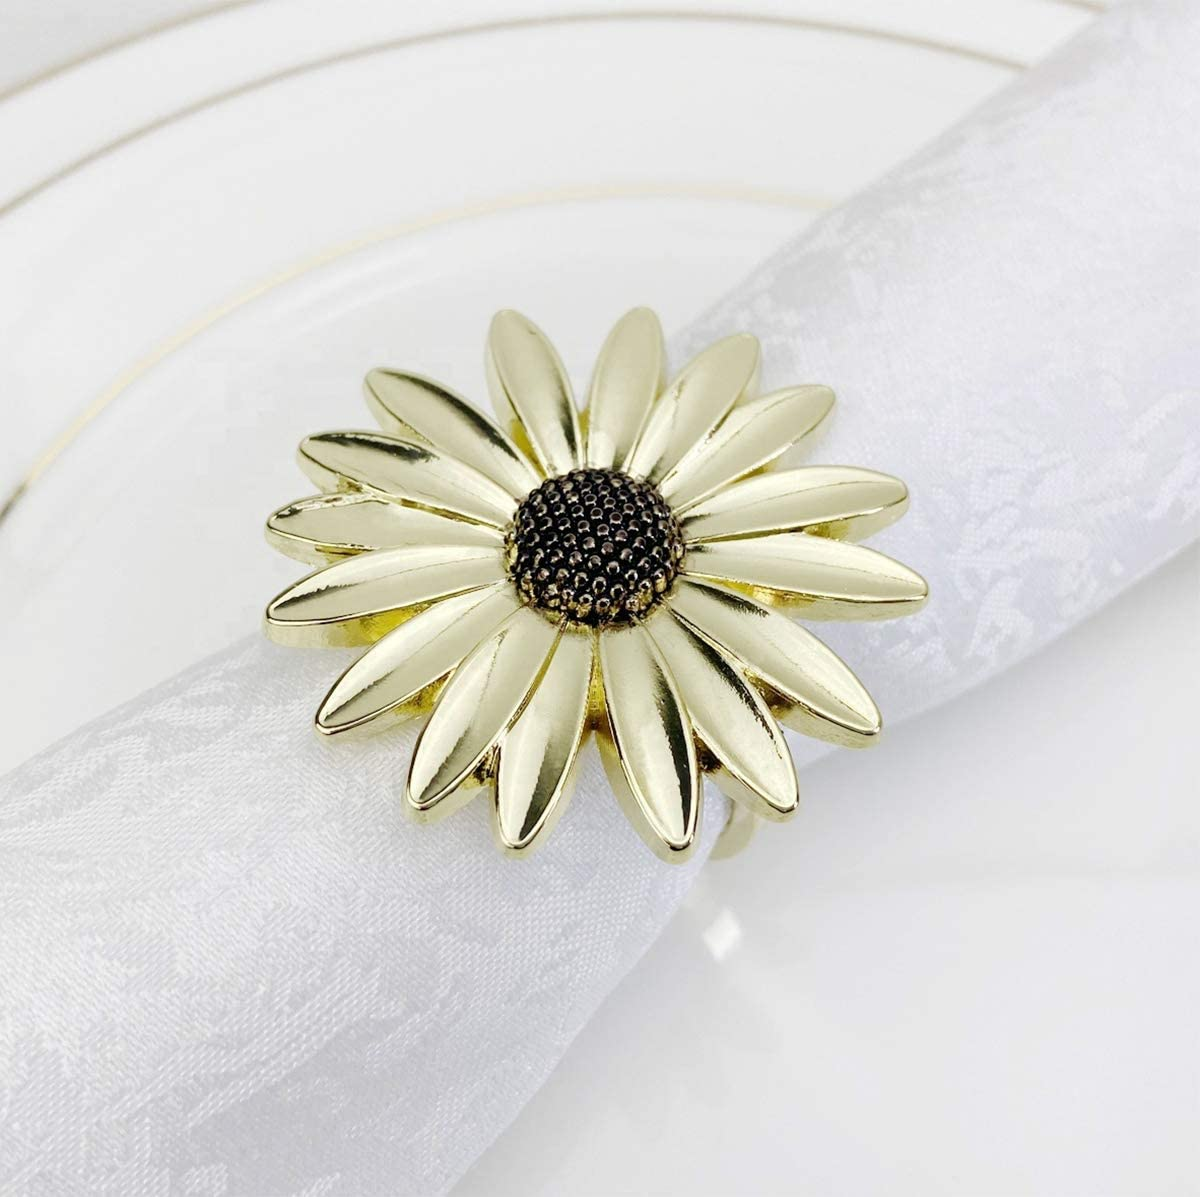 Fennco Styles Contemporary Mail order cheap Sunflower Metal Rings Napkin Set Max 88% OFF of